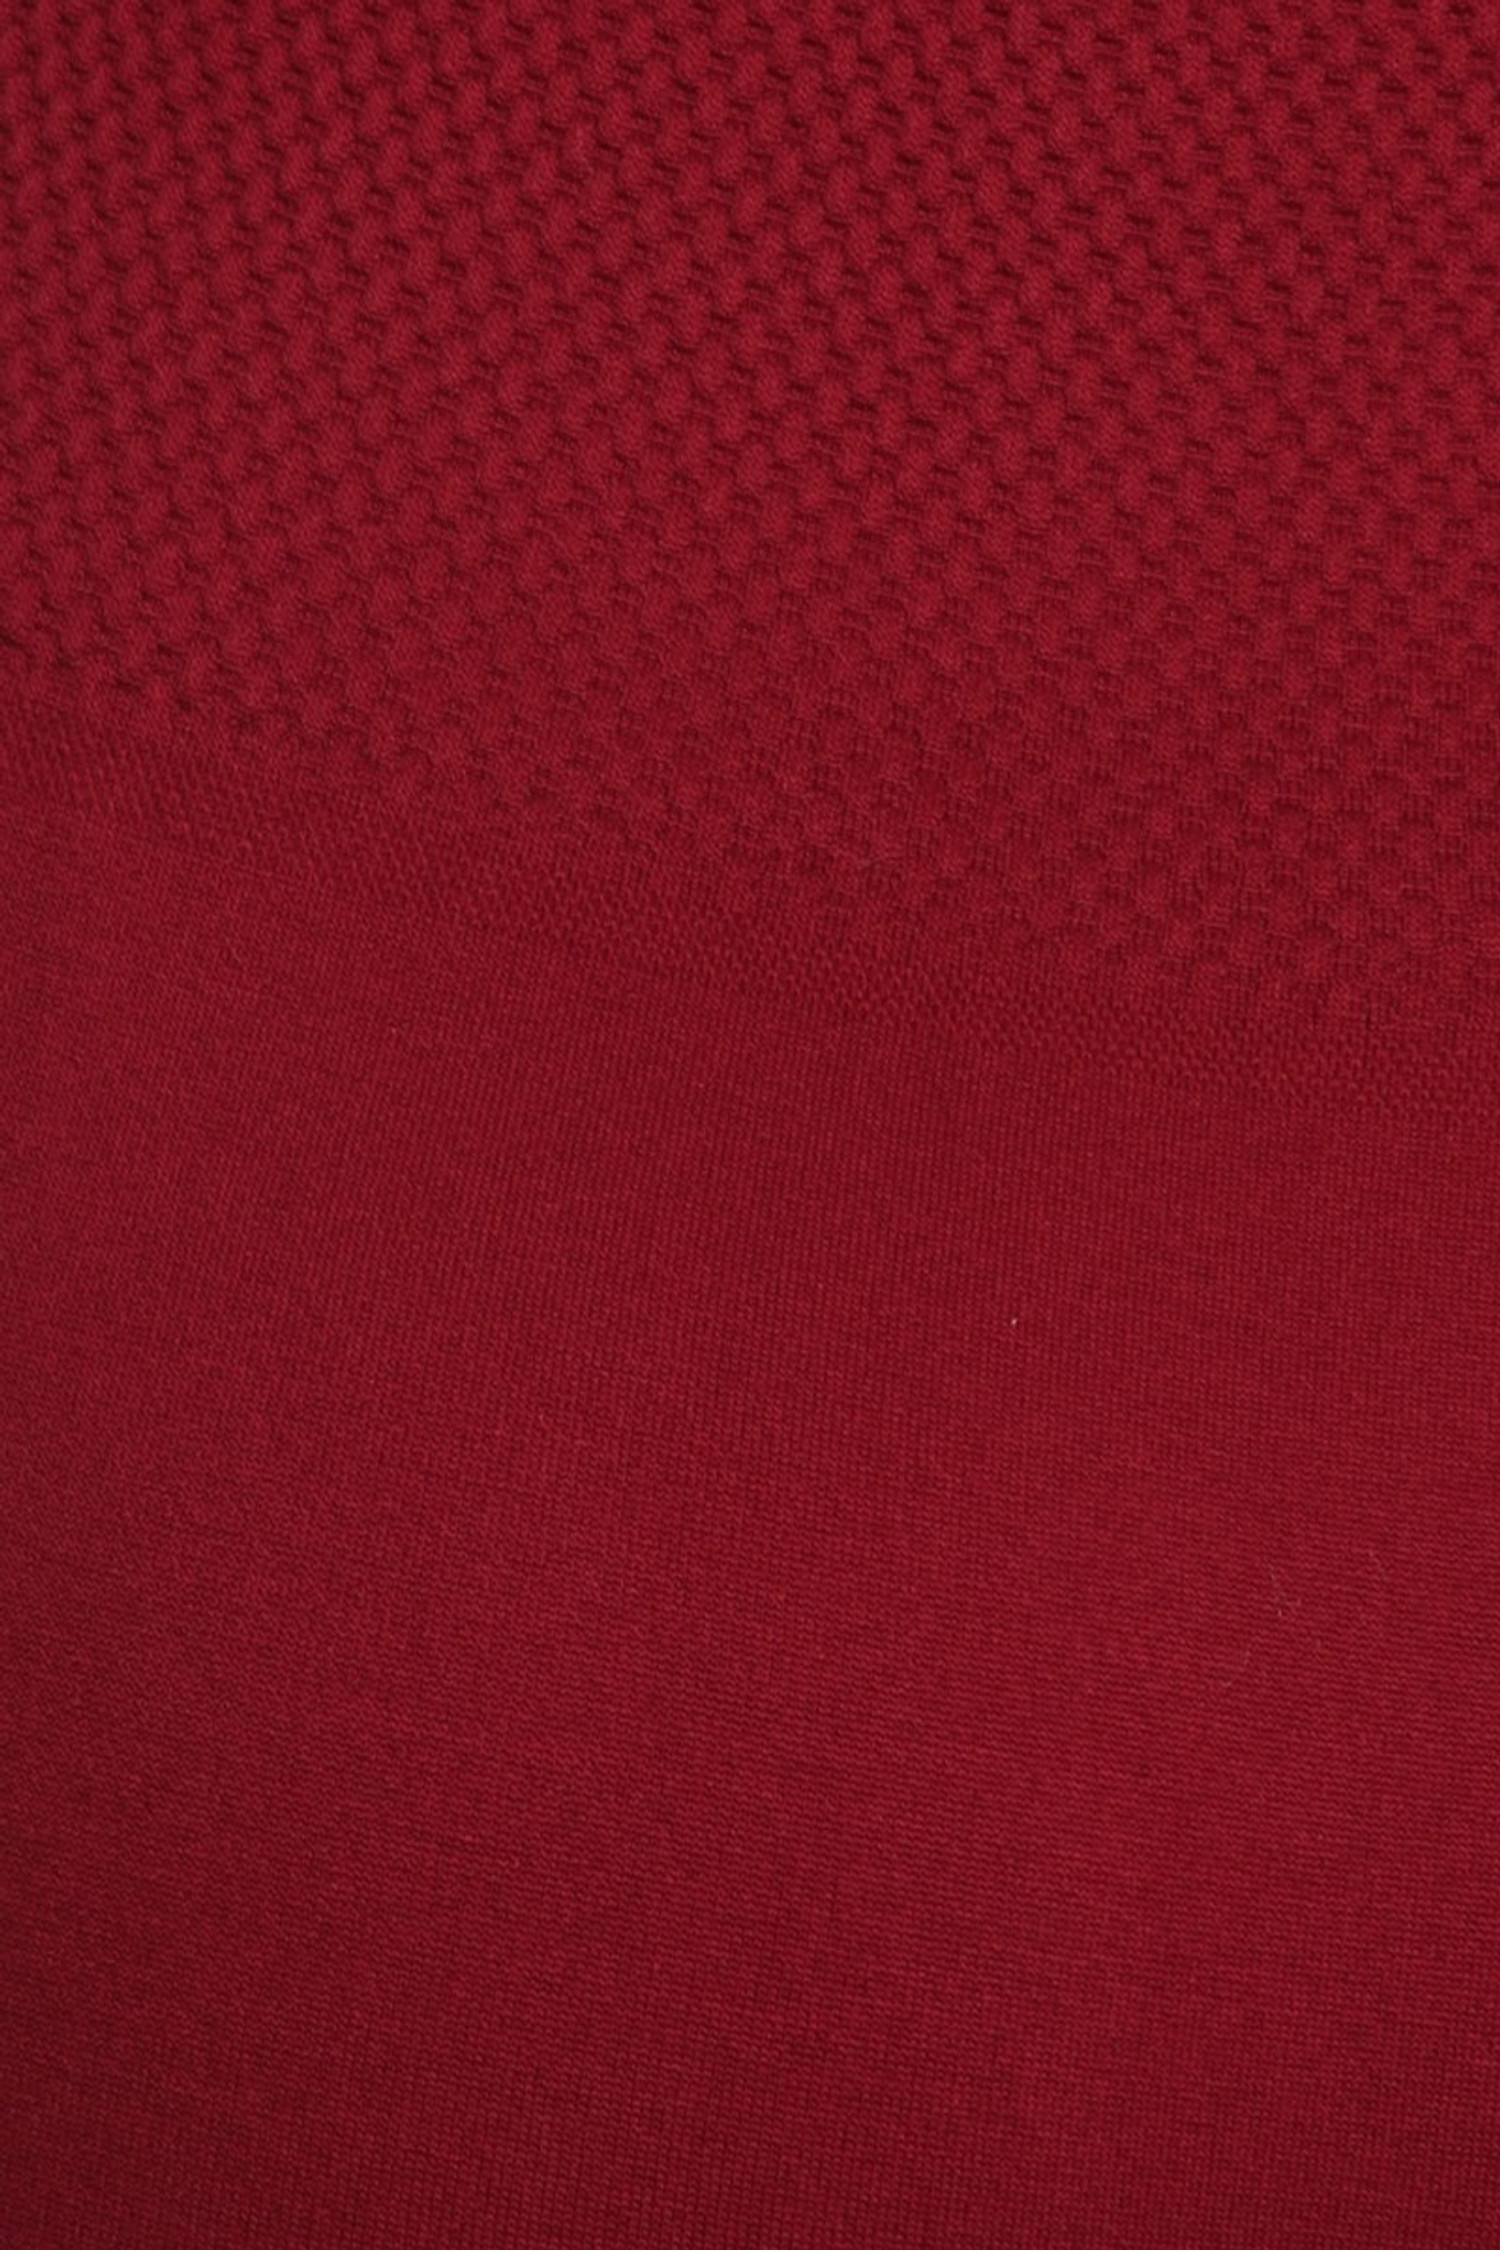 close-up image of a Burgundy Banded High Waisted Fleece Lined Legging of the banded waist band showing the high waist fabric finish and outer fleece fabric